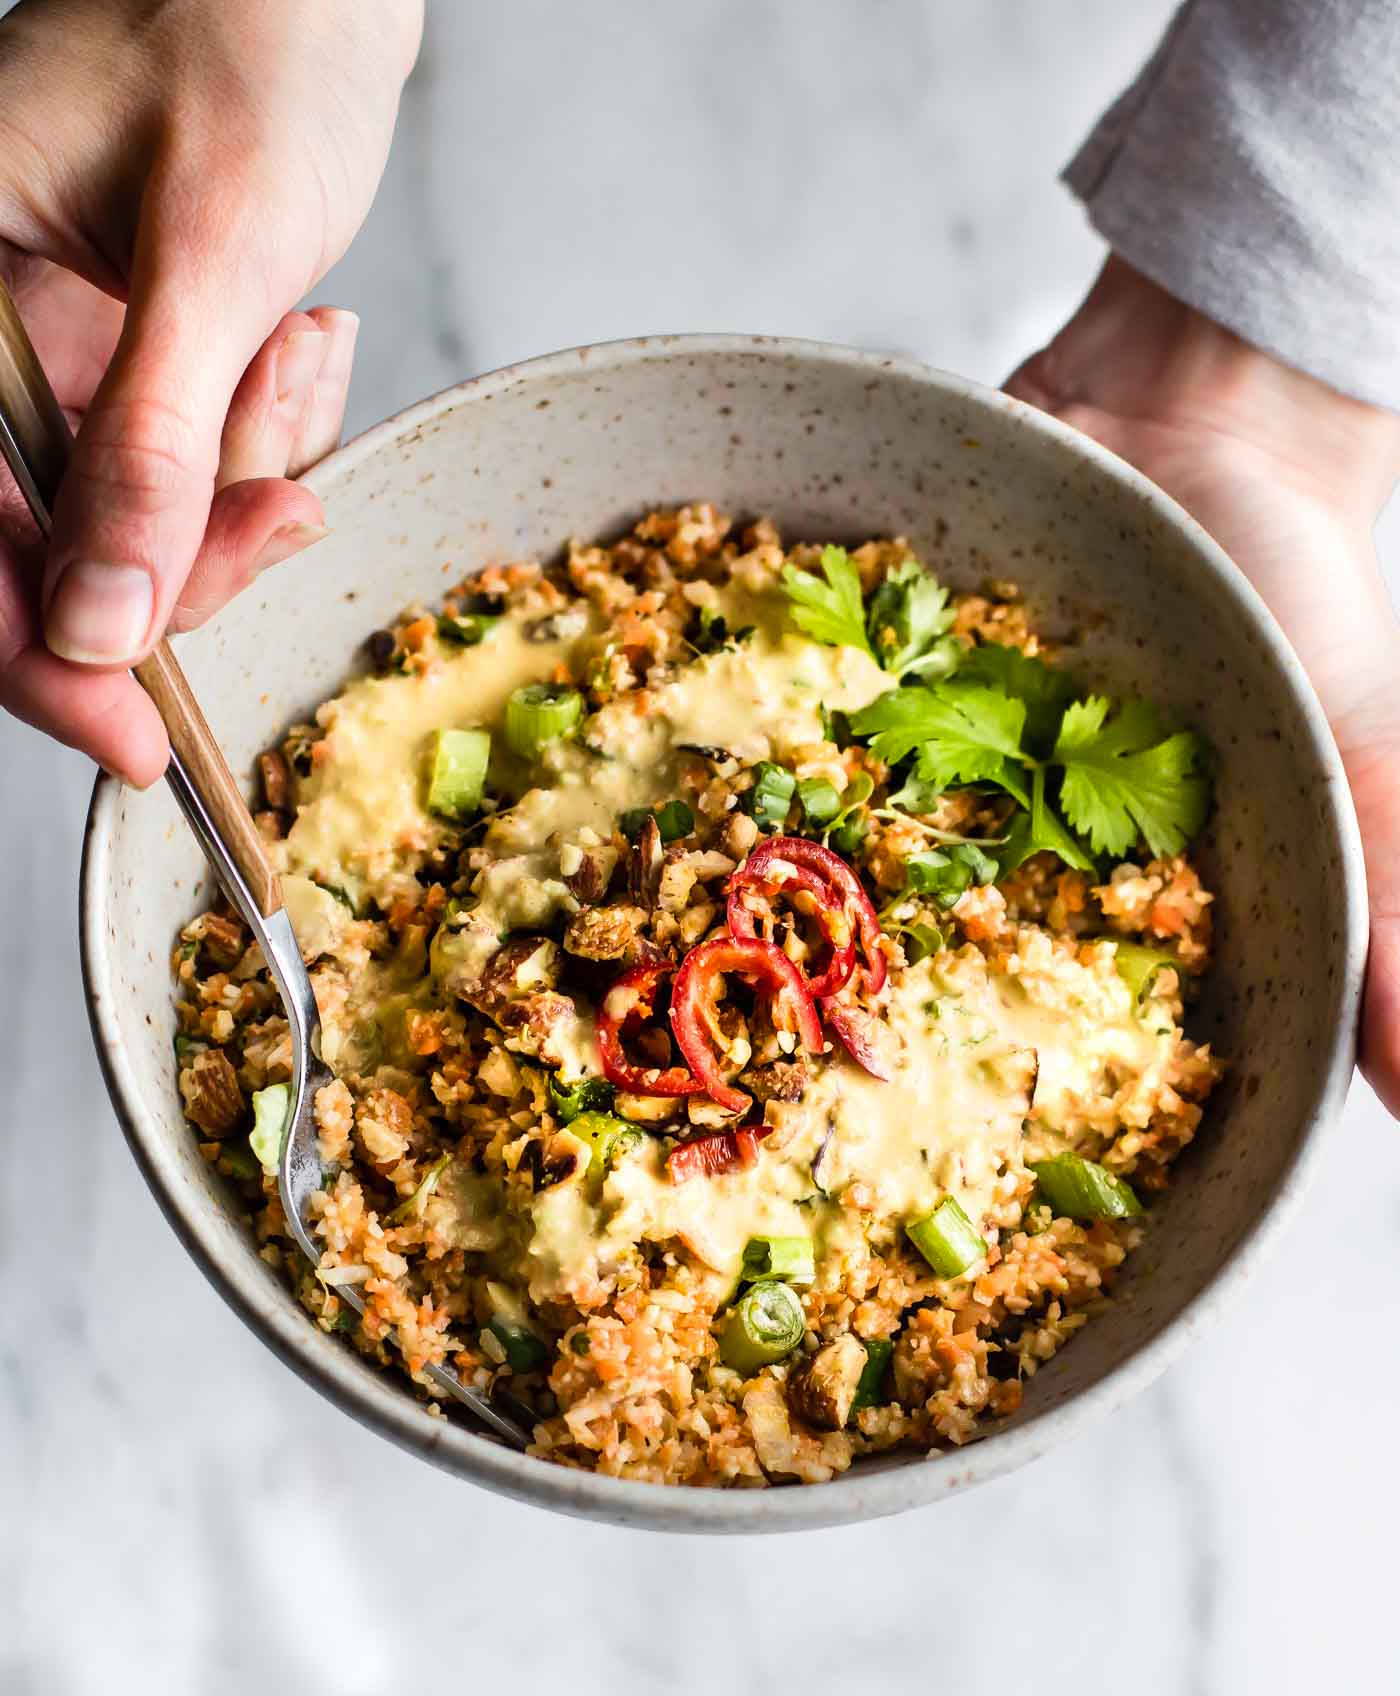 Soooo good, Thai Cauliflower Rice Salad with Creamy Avacado Dressing. Warm, healthy and delicious all in one bowl, Forever Fit, Duncan, BC